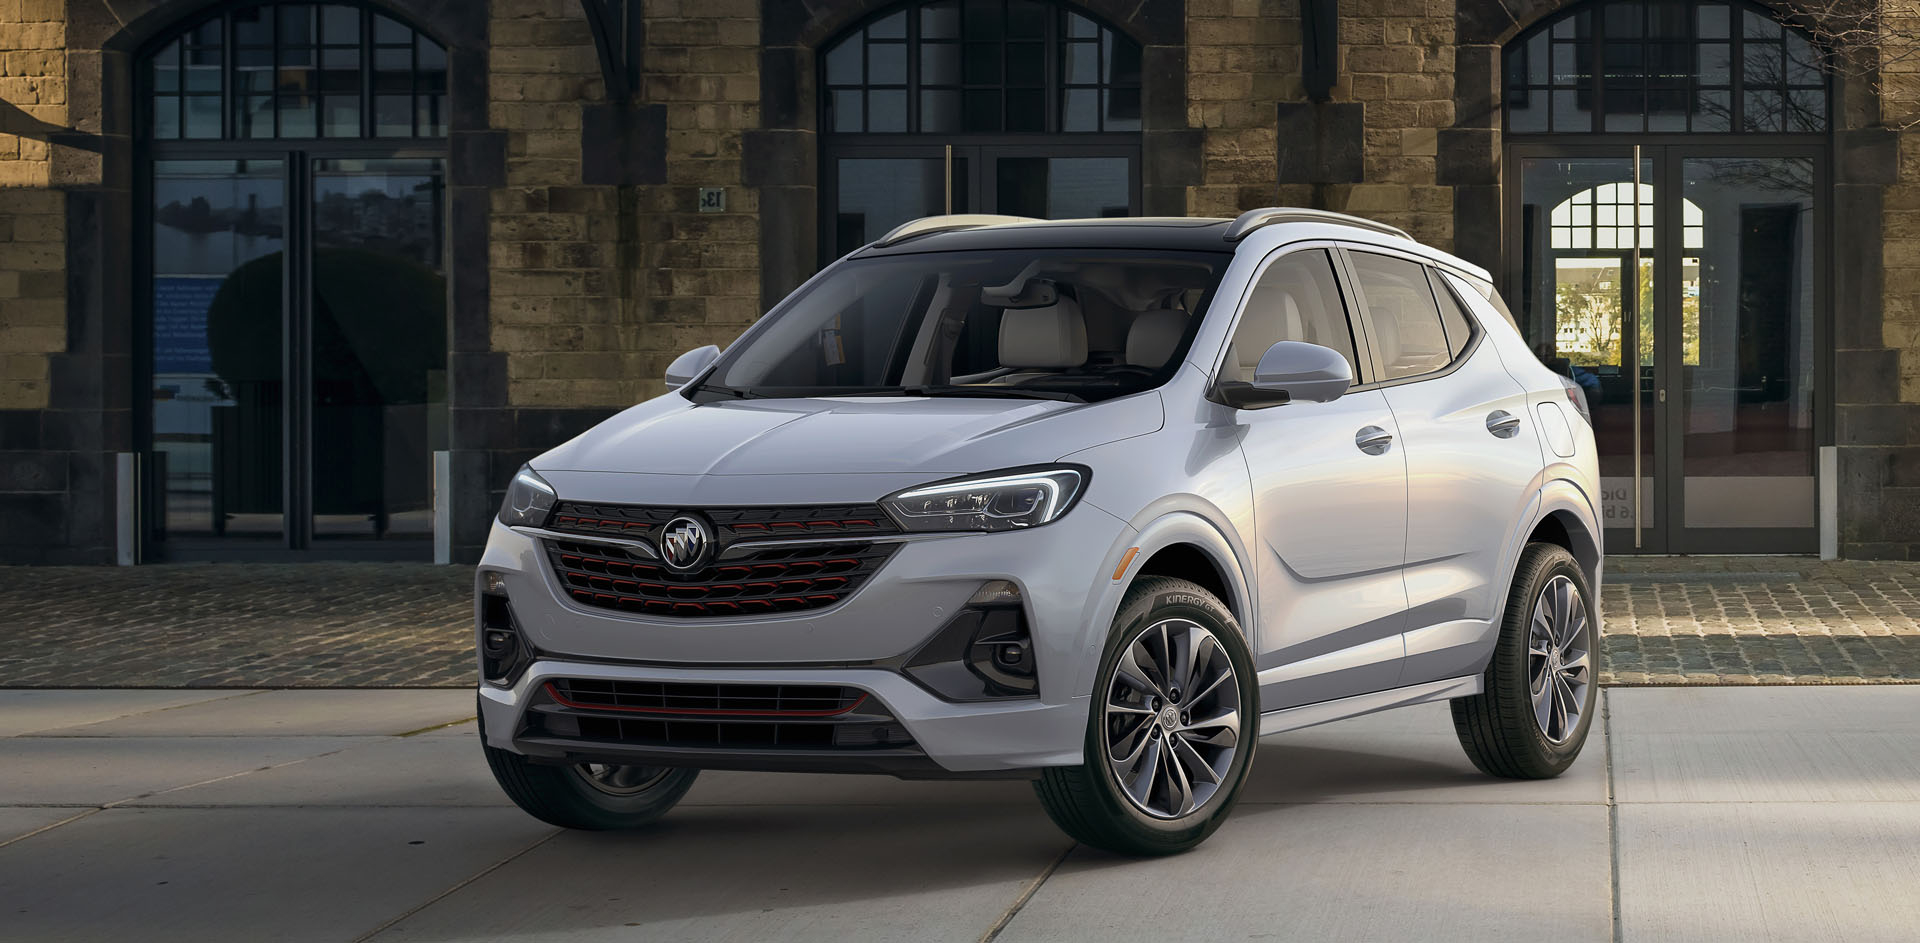 Buick Reveals U.s. Specs For The 2020 Encore Gx New 2022 Buick Encore Transmission, Tire Size, Test Drive